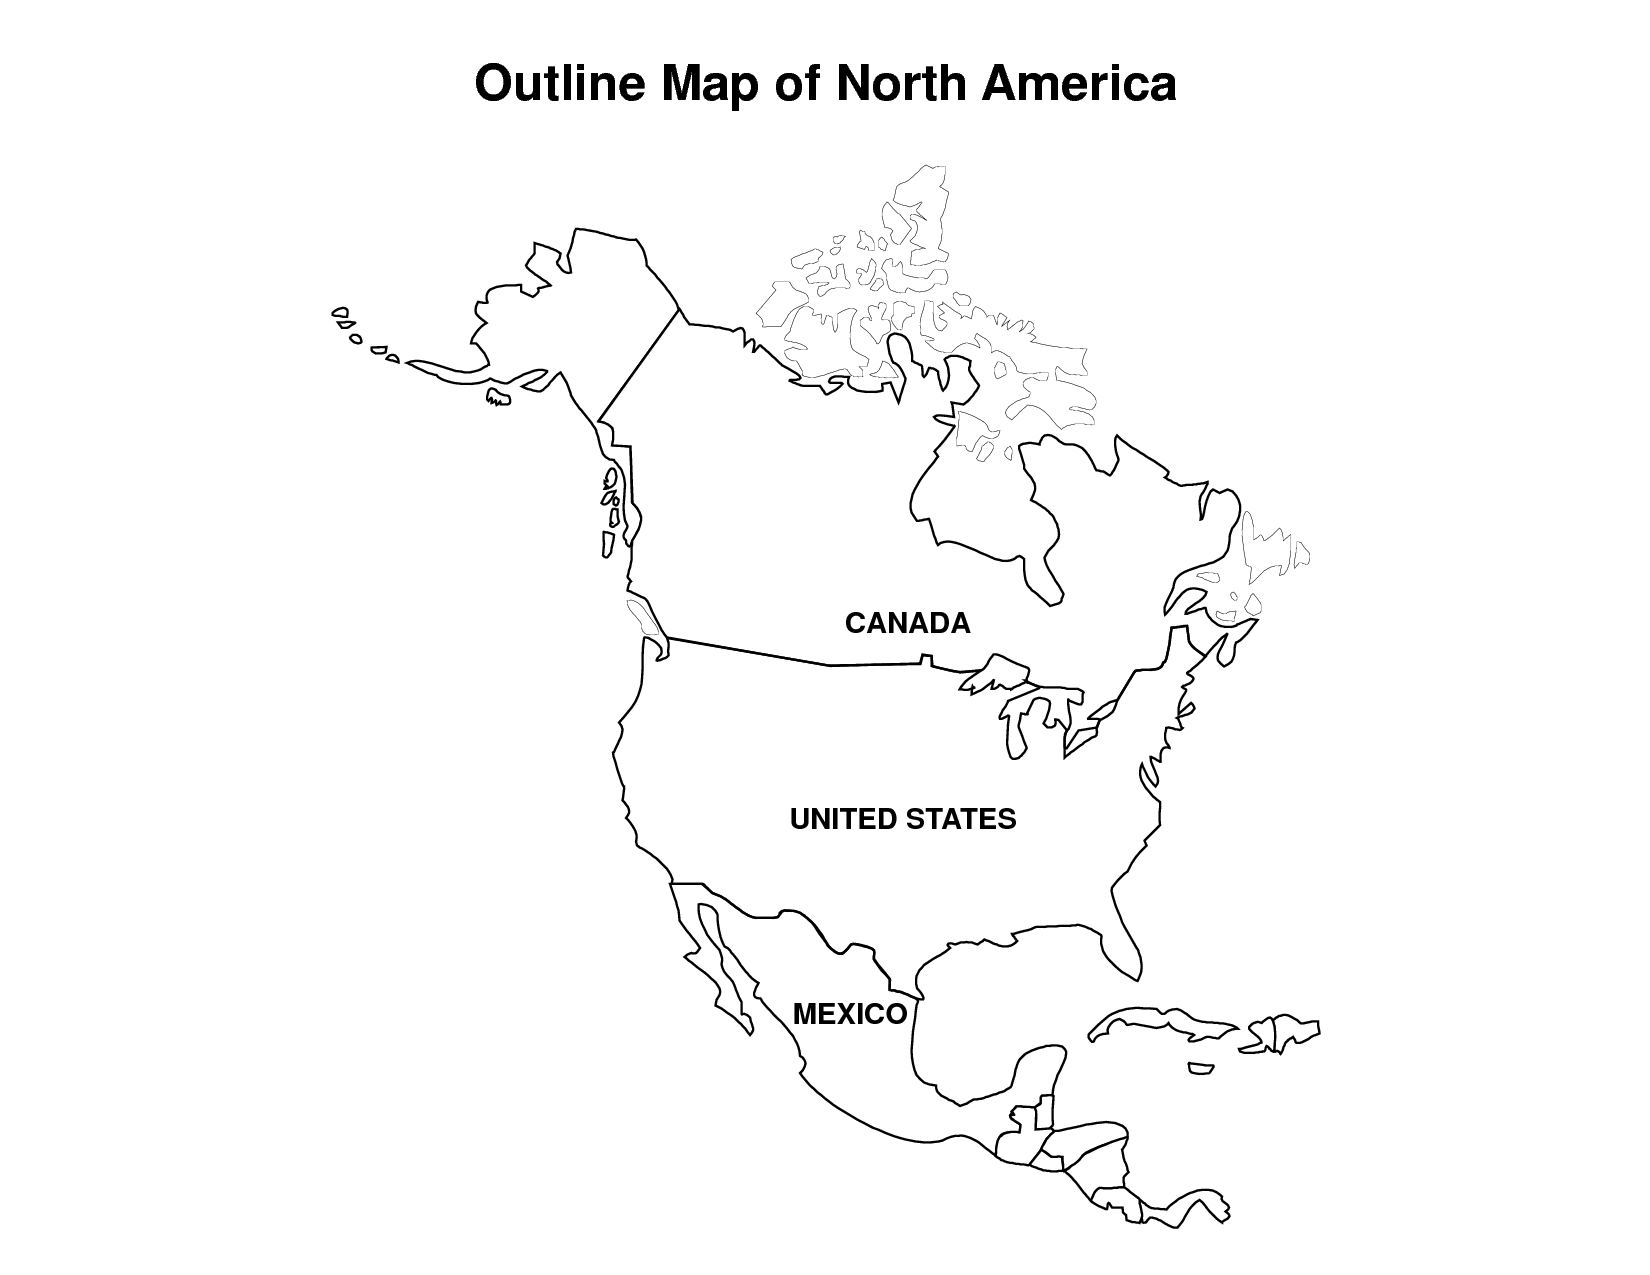 photograph relating to Map of North America Printable referred to as Printable Map of North The united states pic Determine Map of North